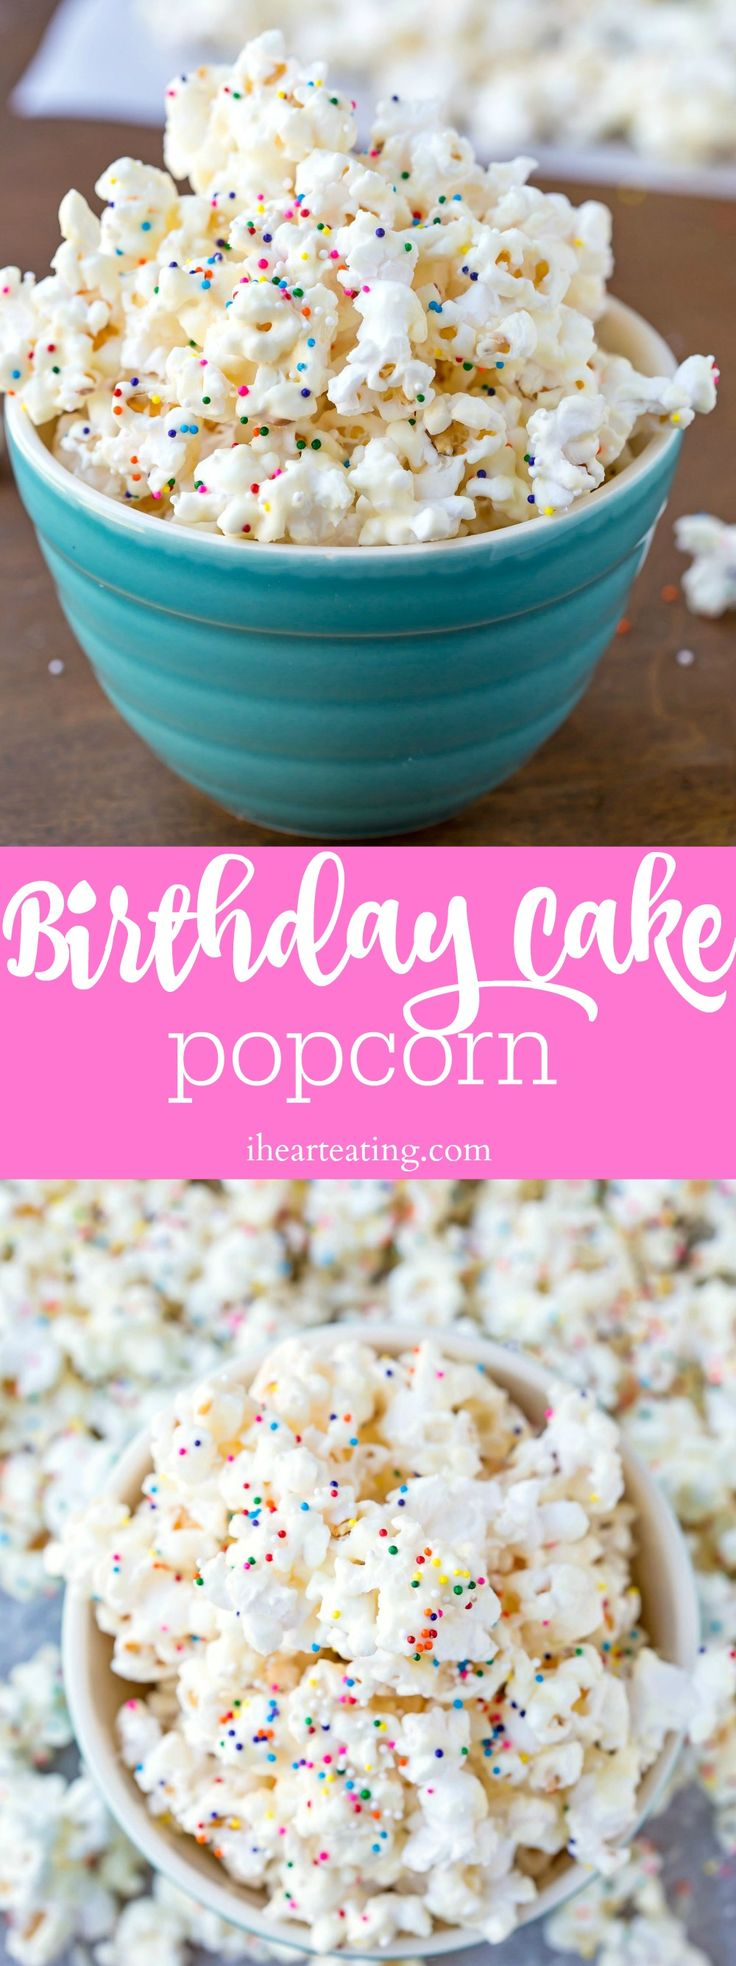 Birthday Cake Popcorn Recipe - easy dessert that's a great party treat idea!